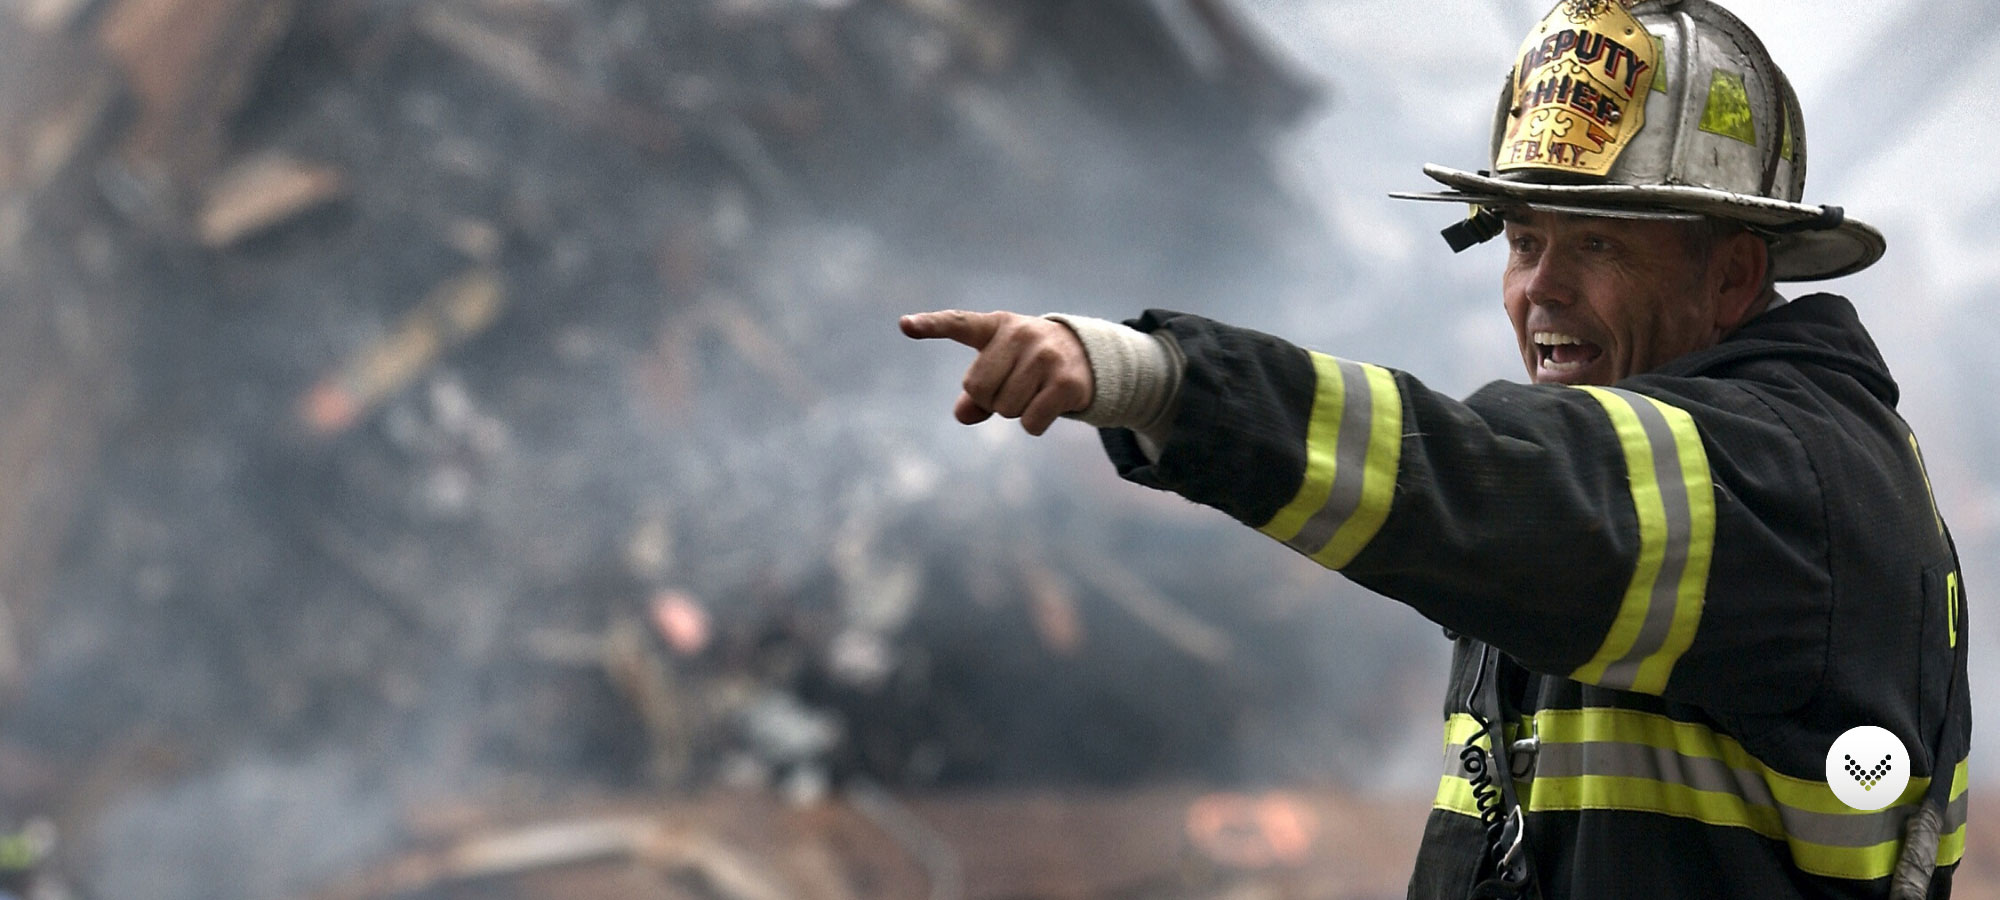 Fire fighter pointing at something and yelling commands on the scene of a disaster.